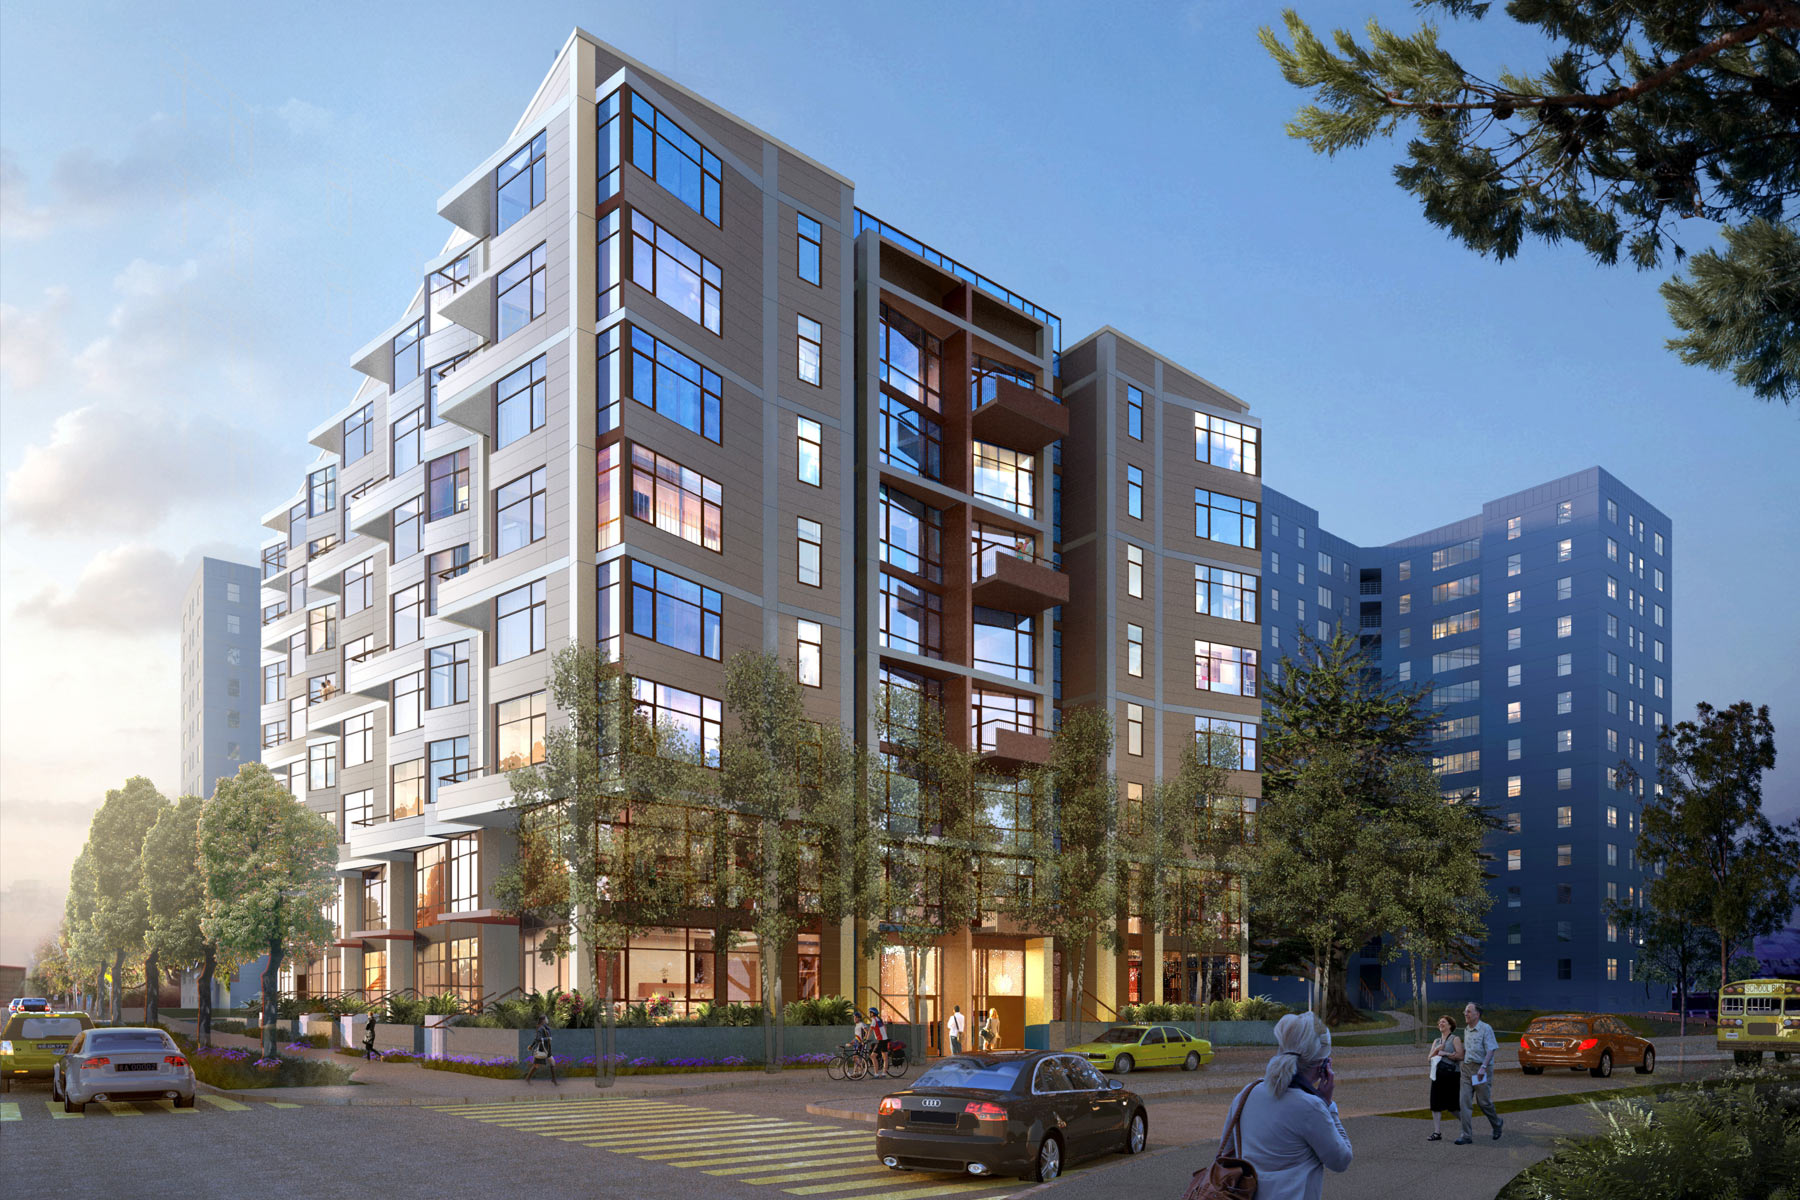 The Parkmerced Revitalization Plan is part of a widespread effort to increase the number of housing units in San Francisco; 300 Arballo's 89 apartments is the first wave of a new development that will eventually add more than 5,000 residences over a period of 20 to 30 years.